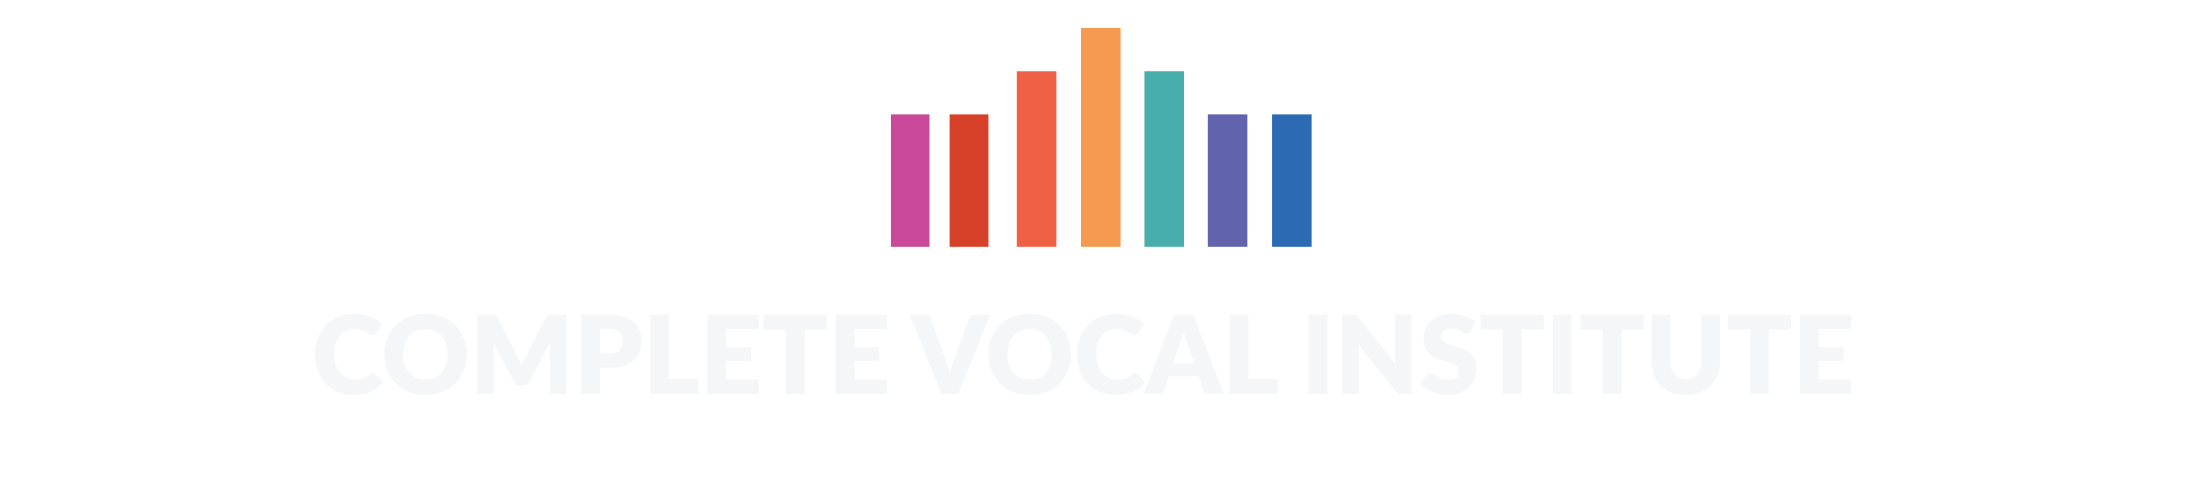 Complete Vocal Institute